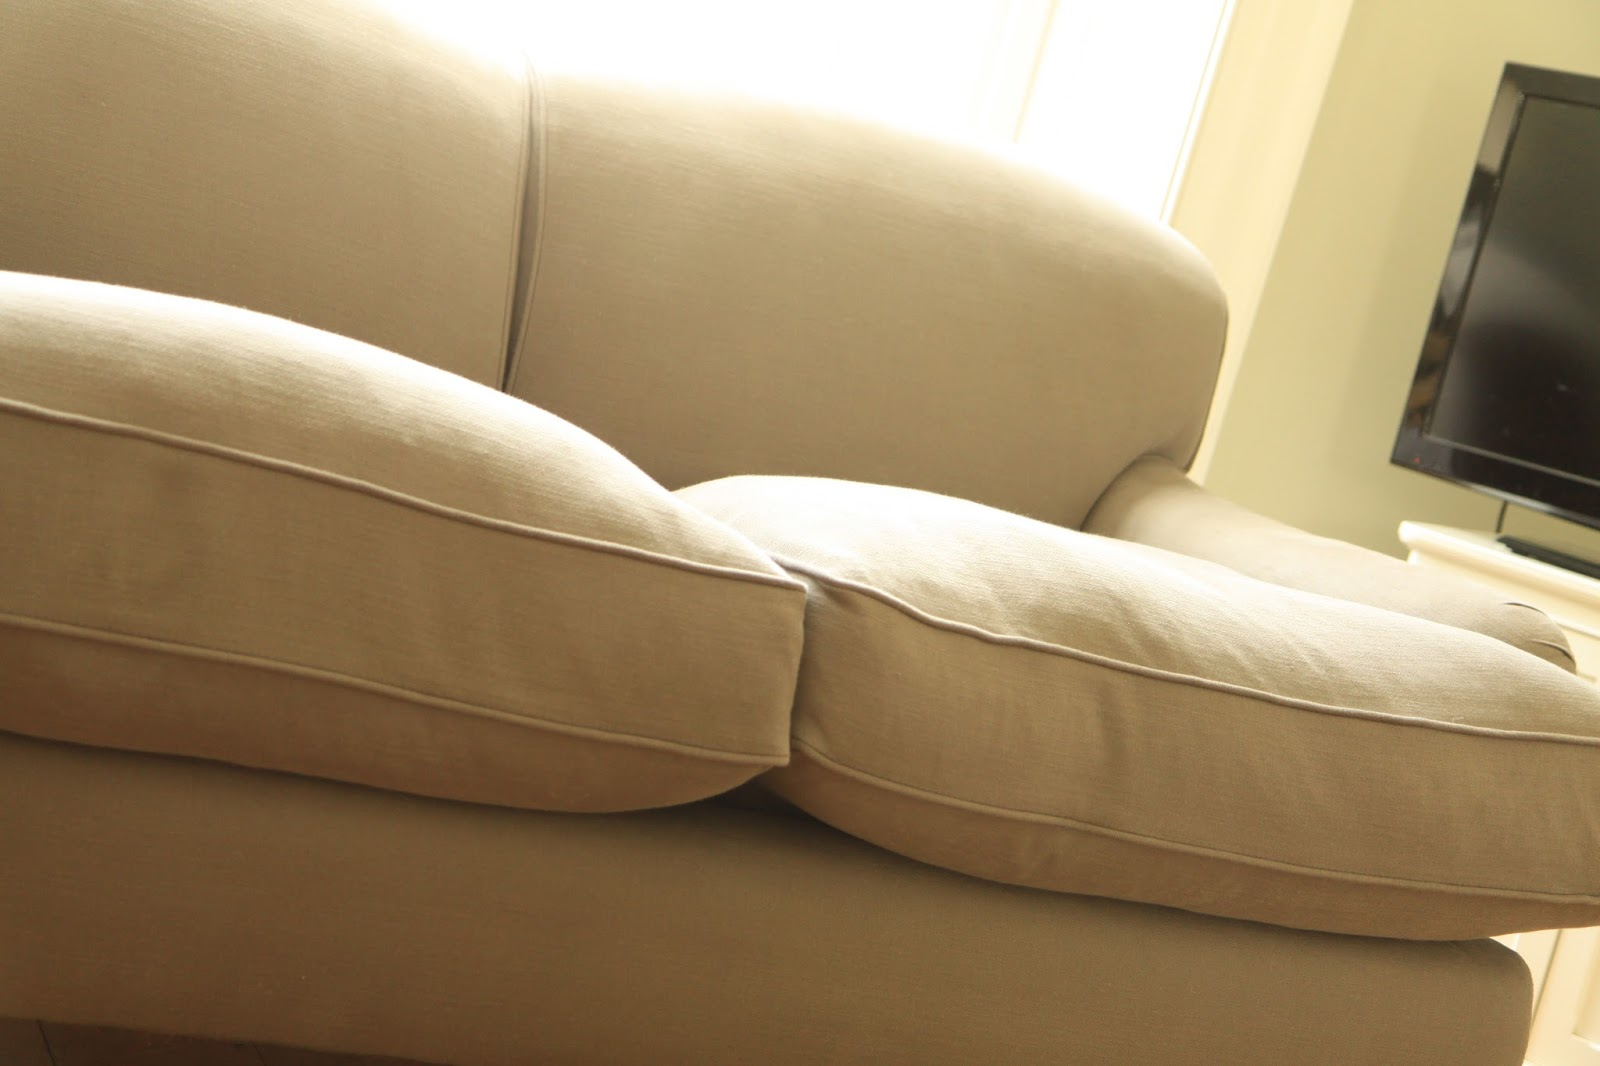 Sofa Pads Uk Walmart Chair Modern Country Style The Best Filling For Plumpest